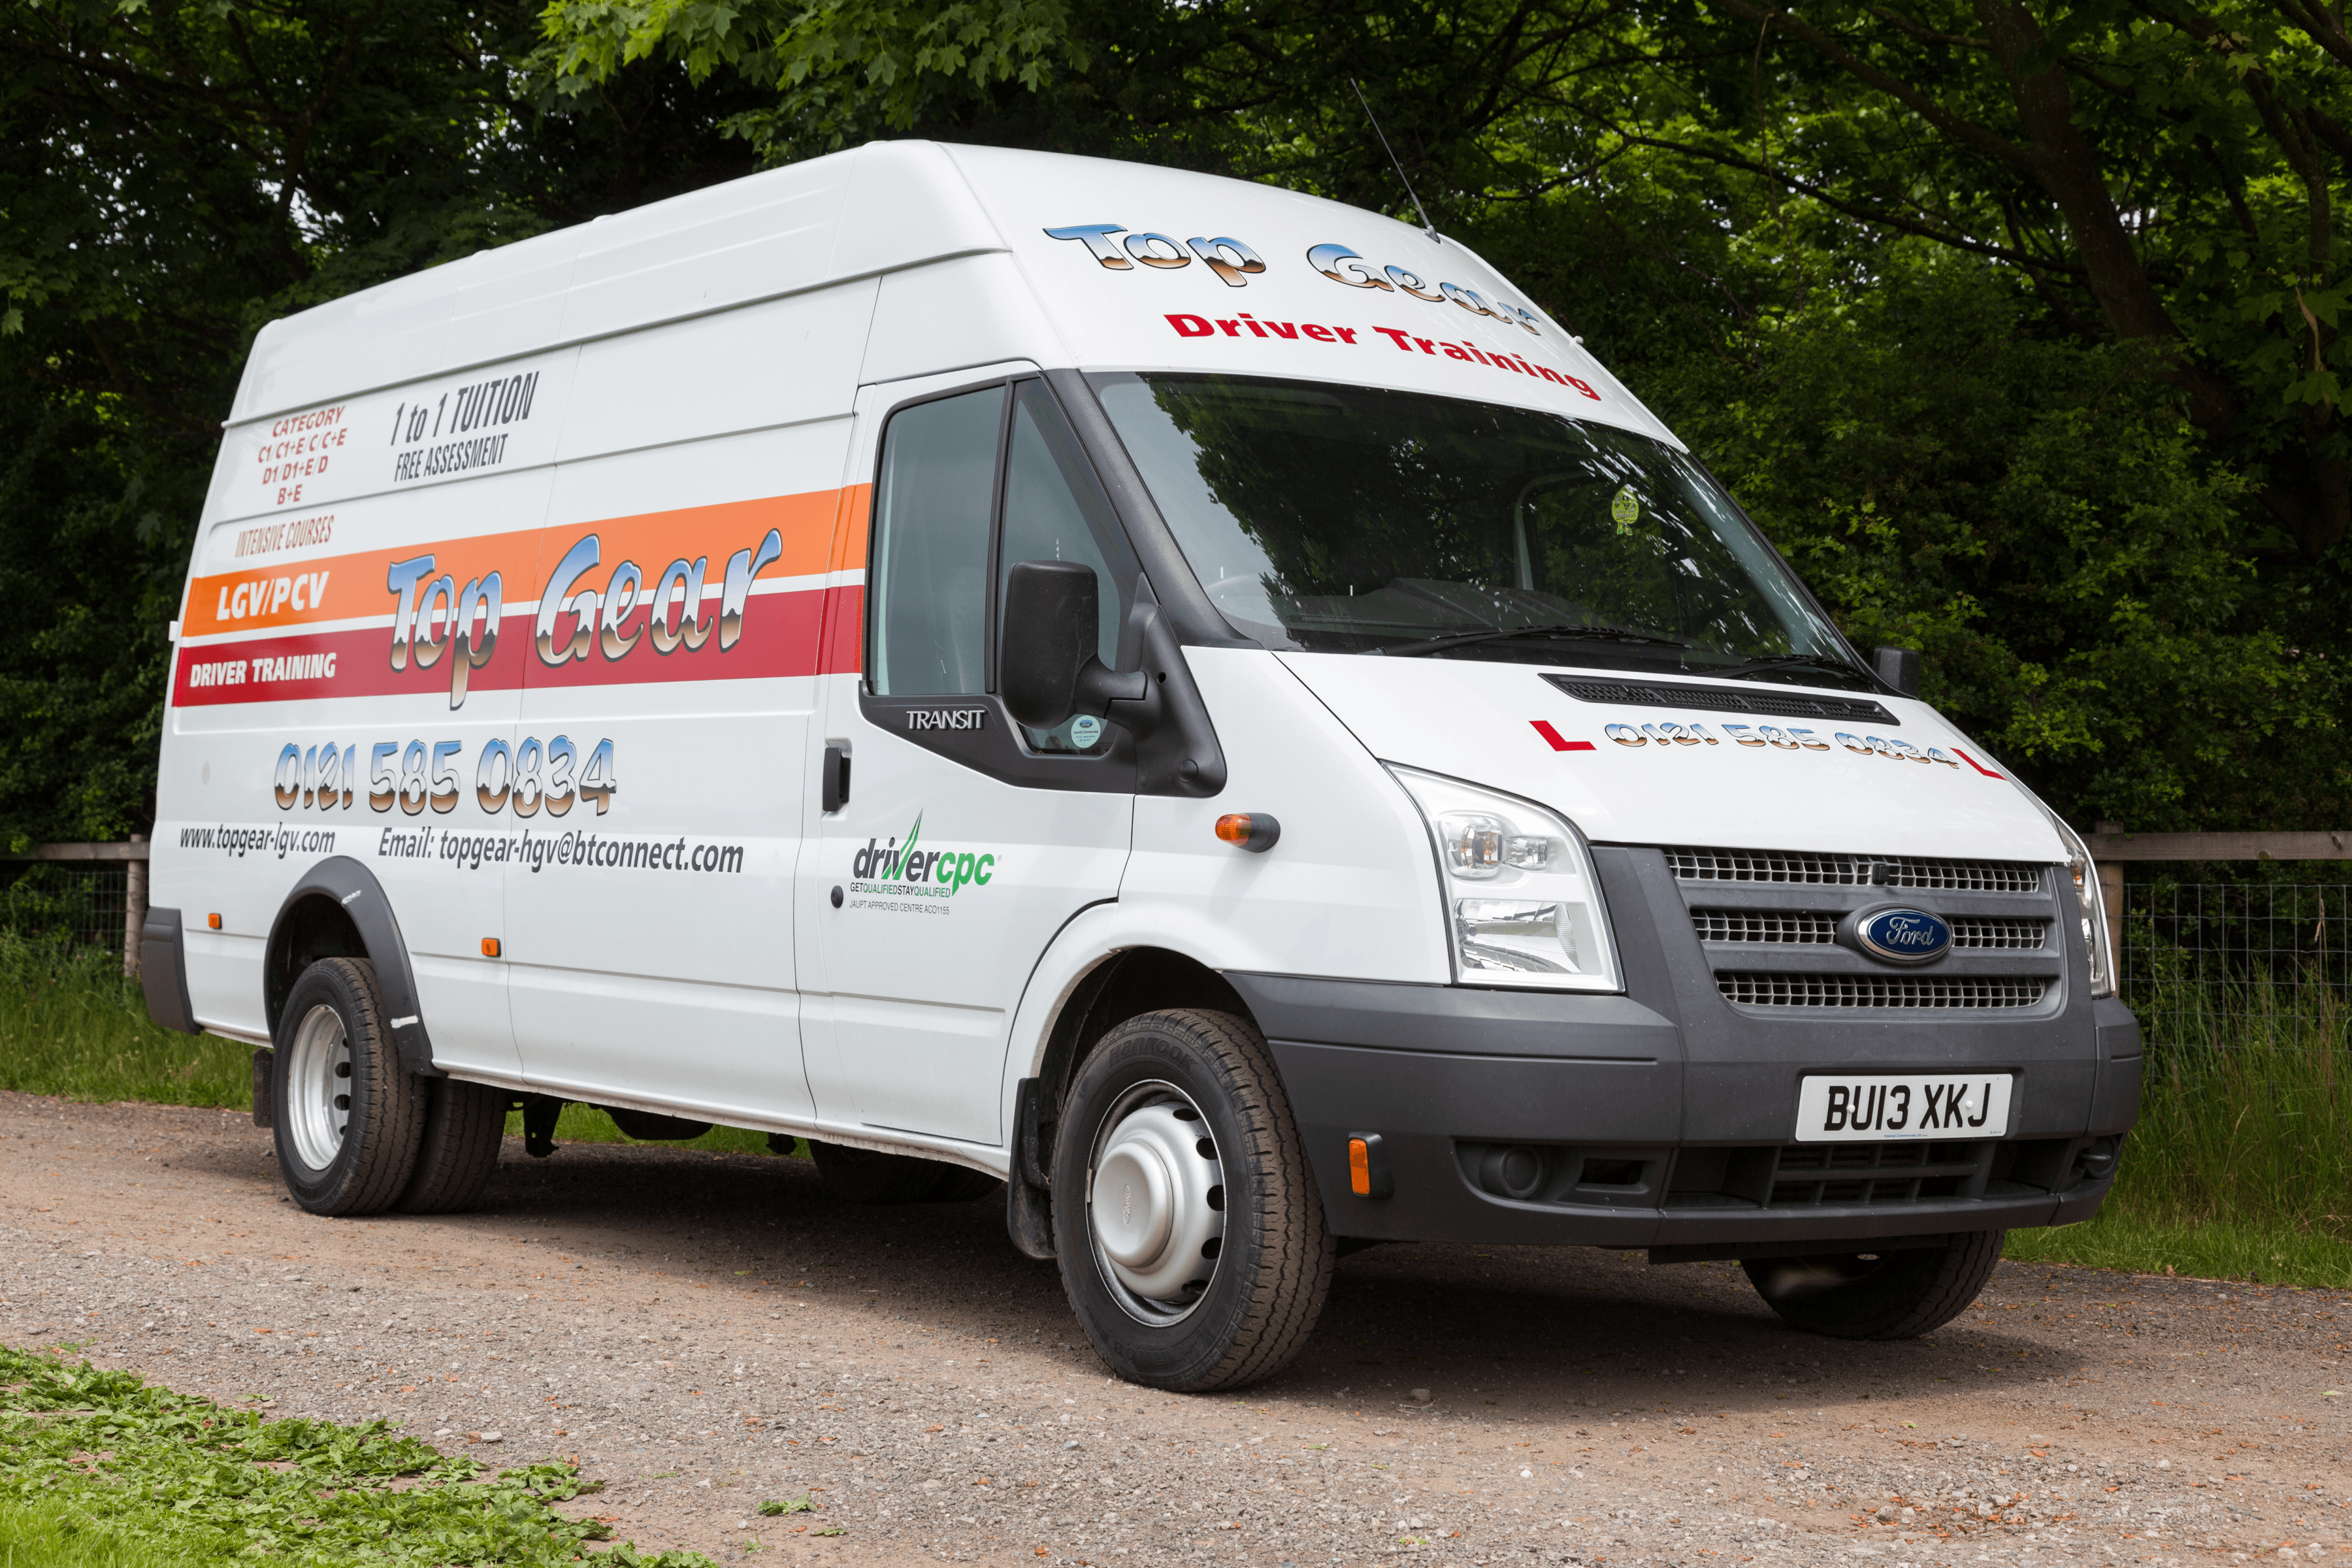 Top Gear Ford Transit